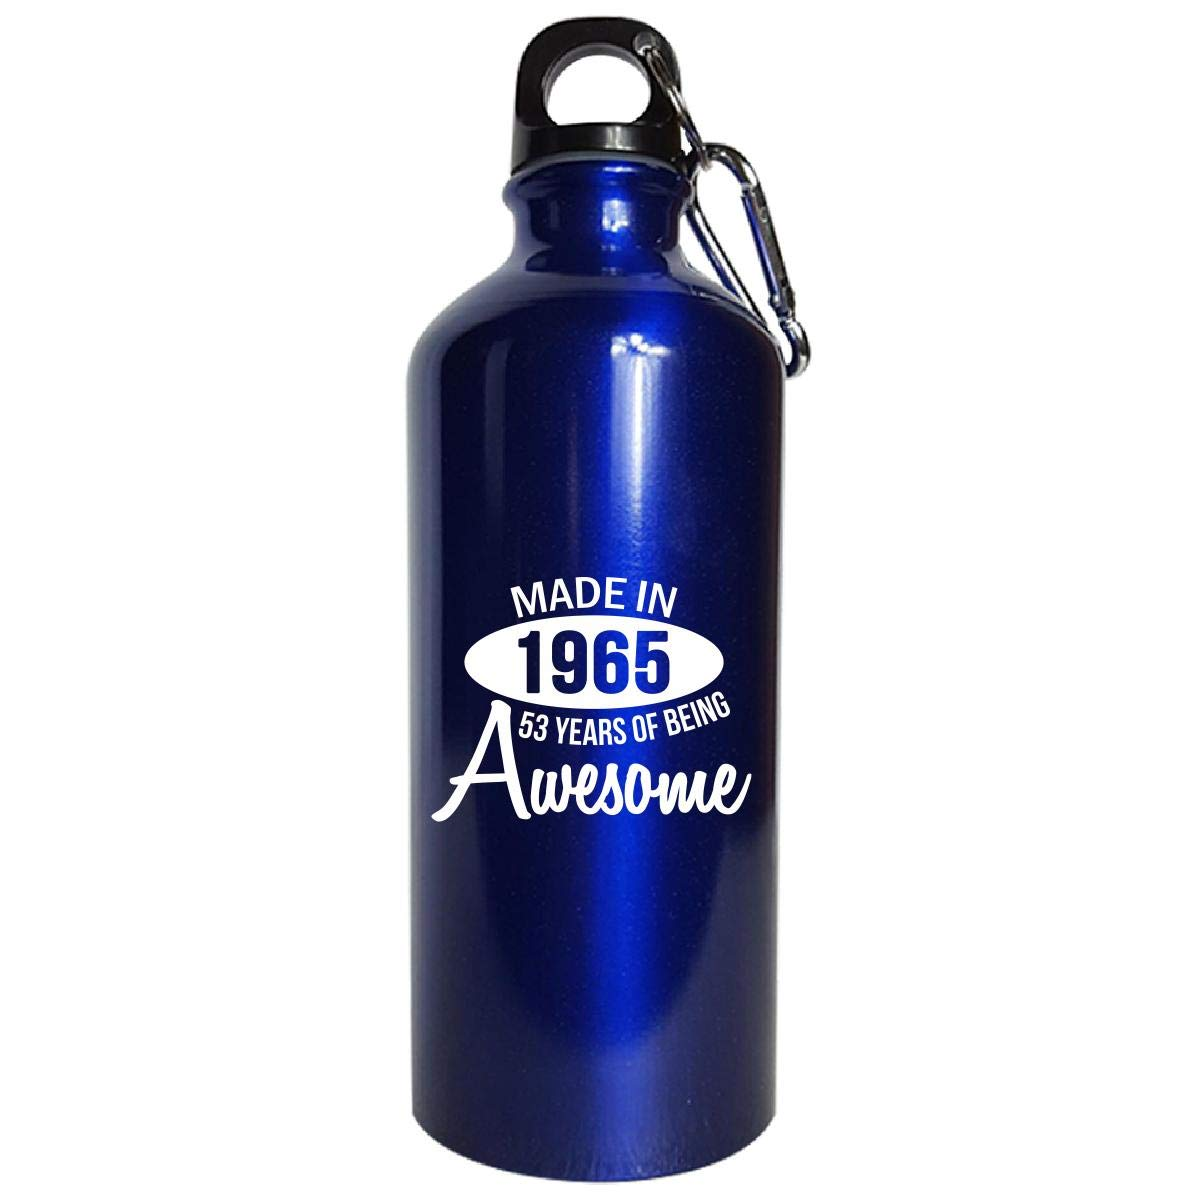 Made In 1965 53 Years Of Being Awesome 53rd Birthday Gift - Water Bottle Metallic Blue by Shirt Luv (Image #1)